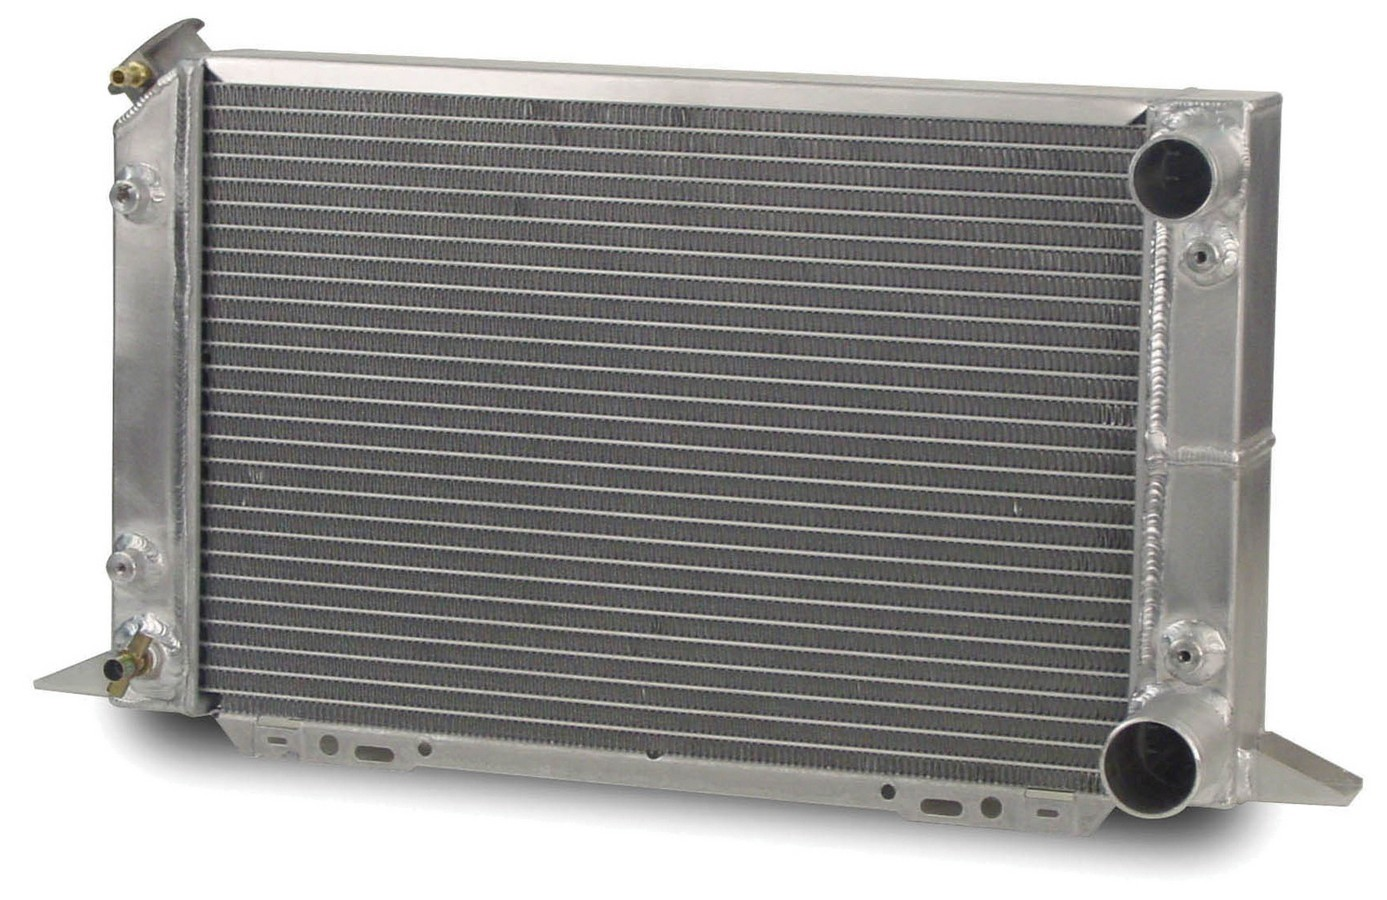 AFCO Racing Products 80104N Radiator, Scirocco, 21-1/2 in W x 12-5/8 in H x 3 in D, Passenger Side Inlet, Passenger Side Outlet, Aluminum, Natural, Each